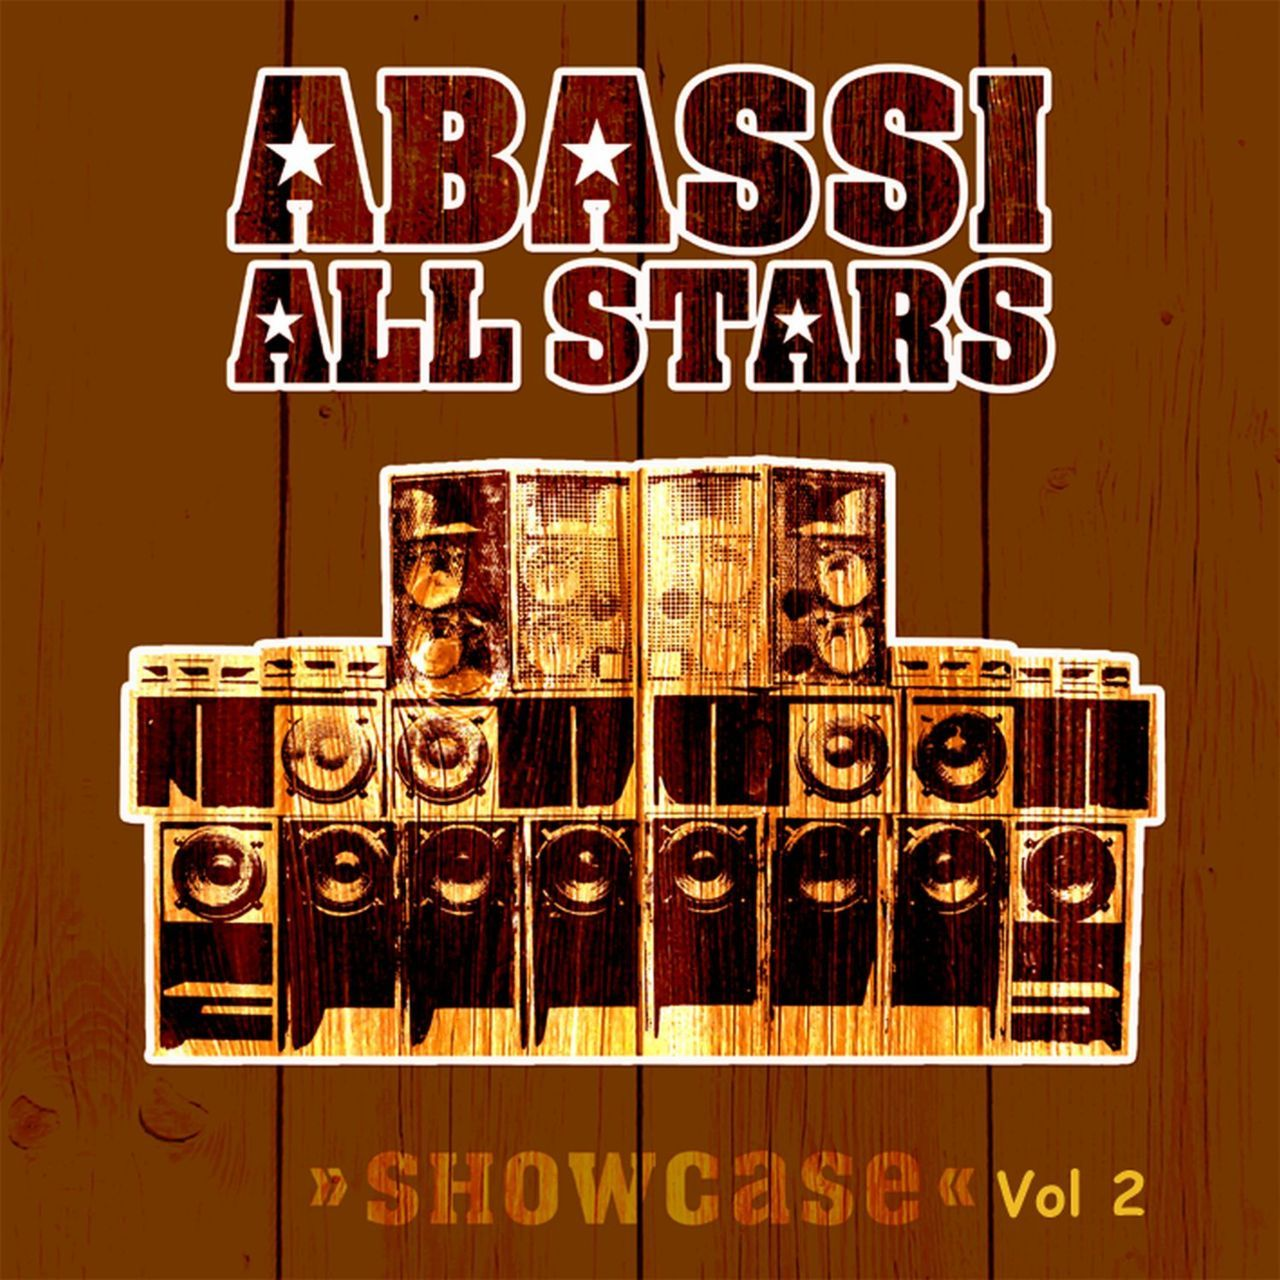 "Abassi All Stars - Showcase Vol 2 - 2012  O segundo volume da compilação ""Showcase"", com vocalistas que passaram pelo projeto Abassi All Stars - que tem como base Neil Perch (Zion Train) e o trio metal Dave Hake (trompete), Bigga (trombone) e Richard Doswell (saxofone and flauta)"" o também chamado ""Zion Train brass section"", artistas consagrados como Tippa Irie, Carlton Livingston, Fitta Warri produzido e mixado por Neil Perch (Zion Train). Lançamento Universal Egg 2012 www.wobblyweb.com"